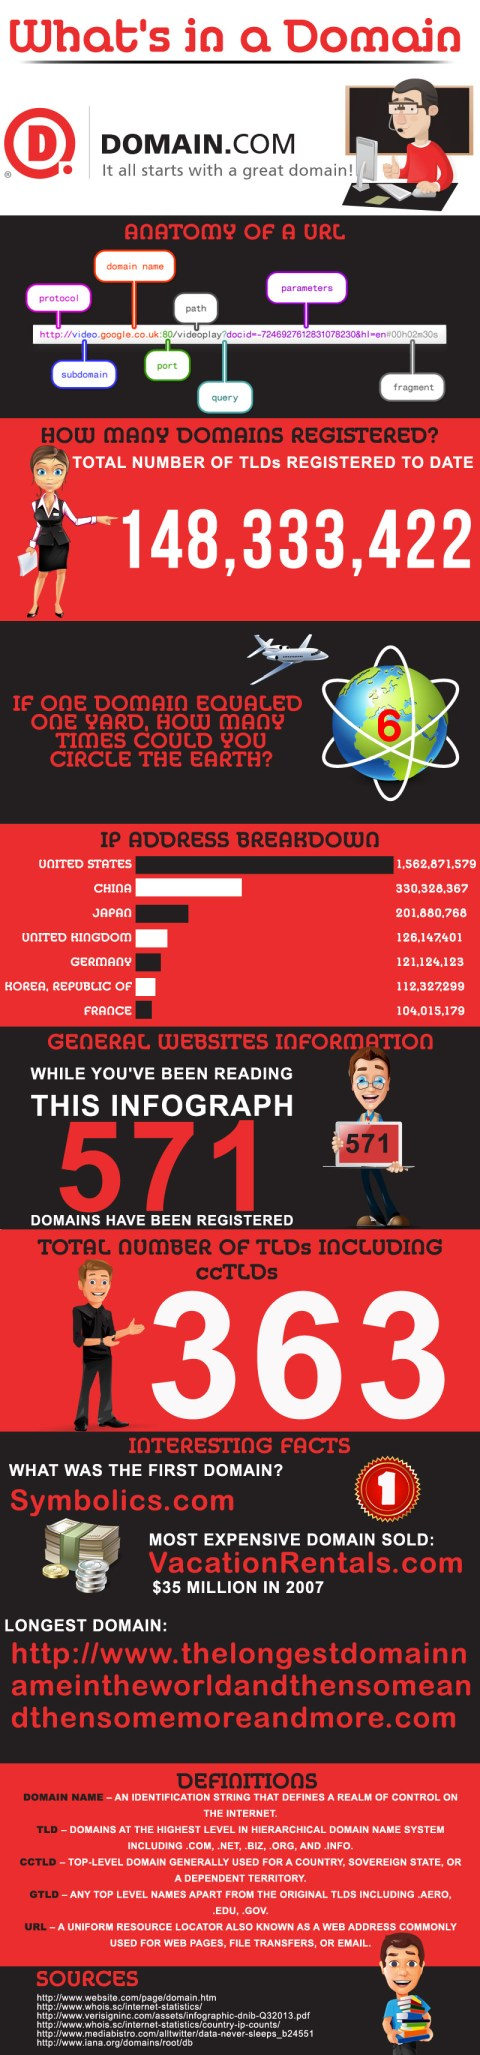 What's in a Domain [Infographic]